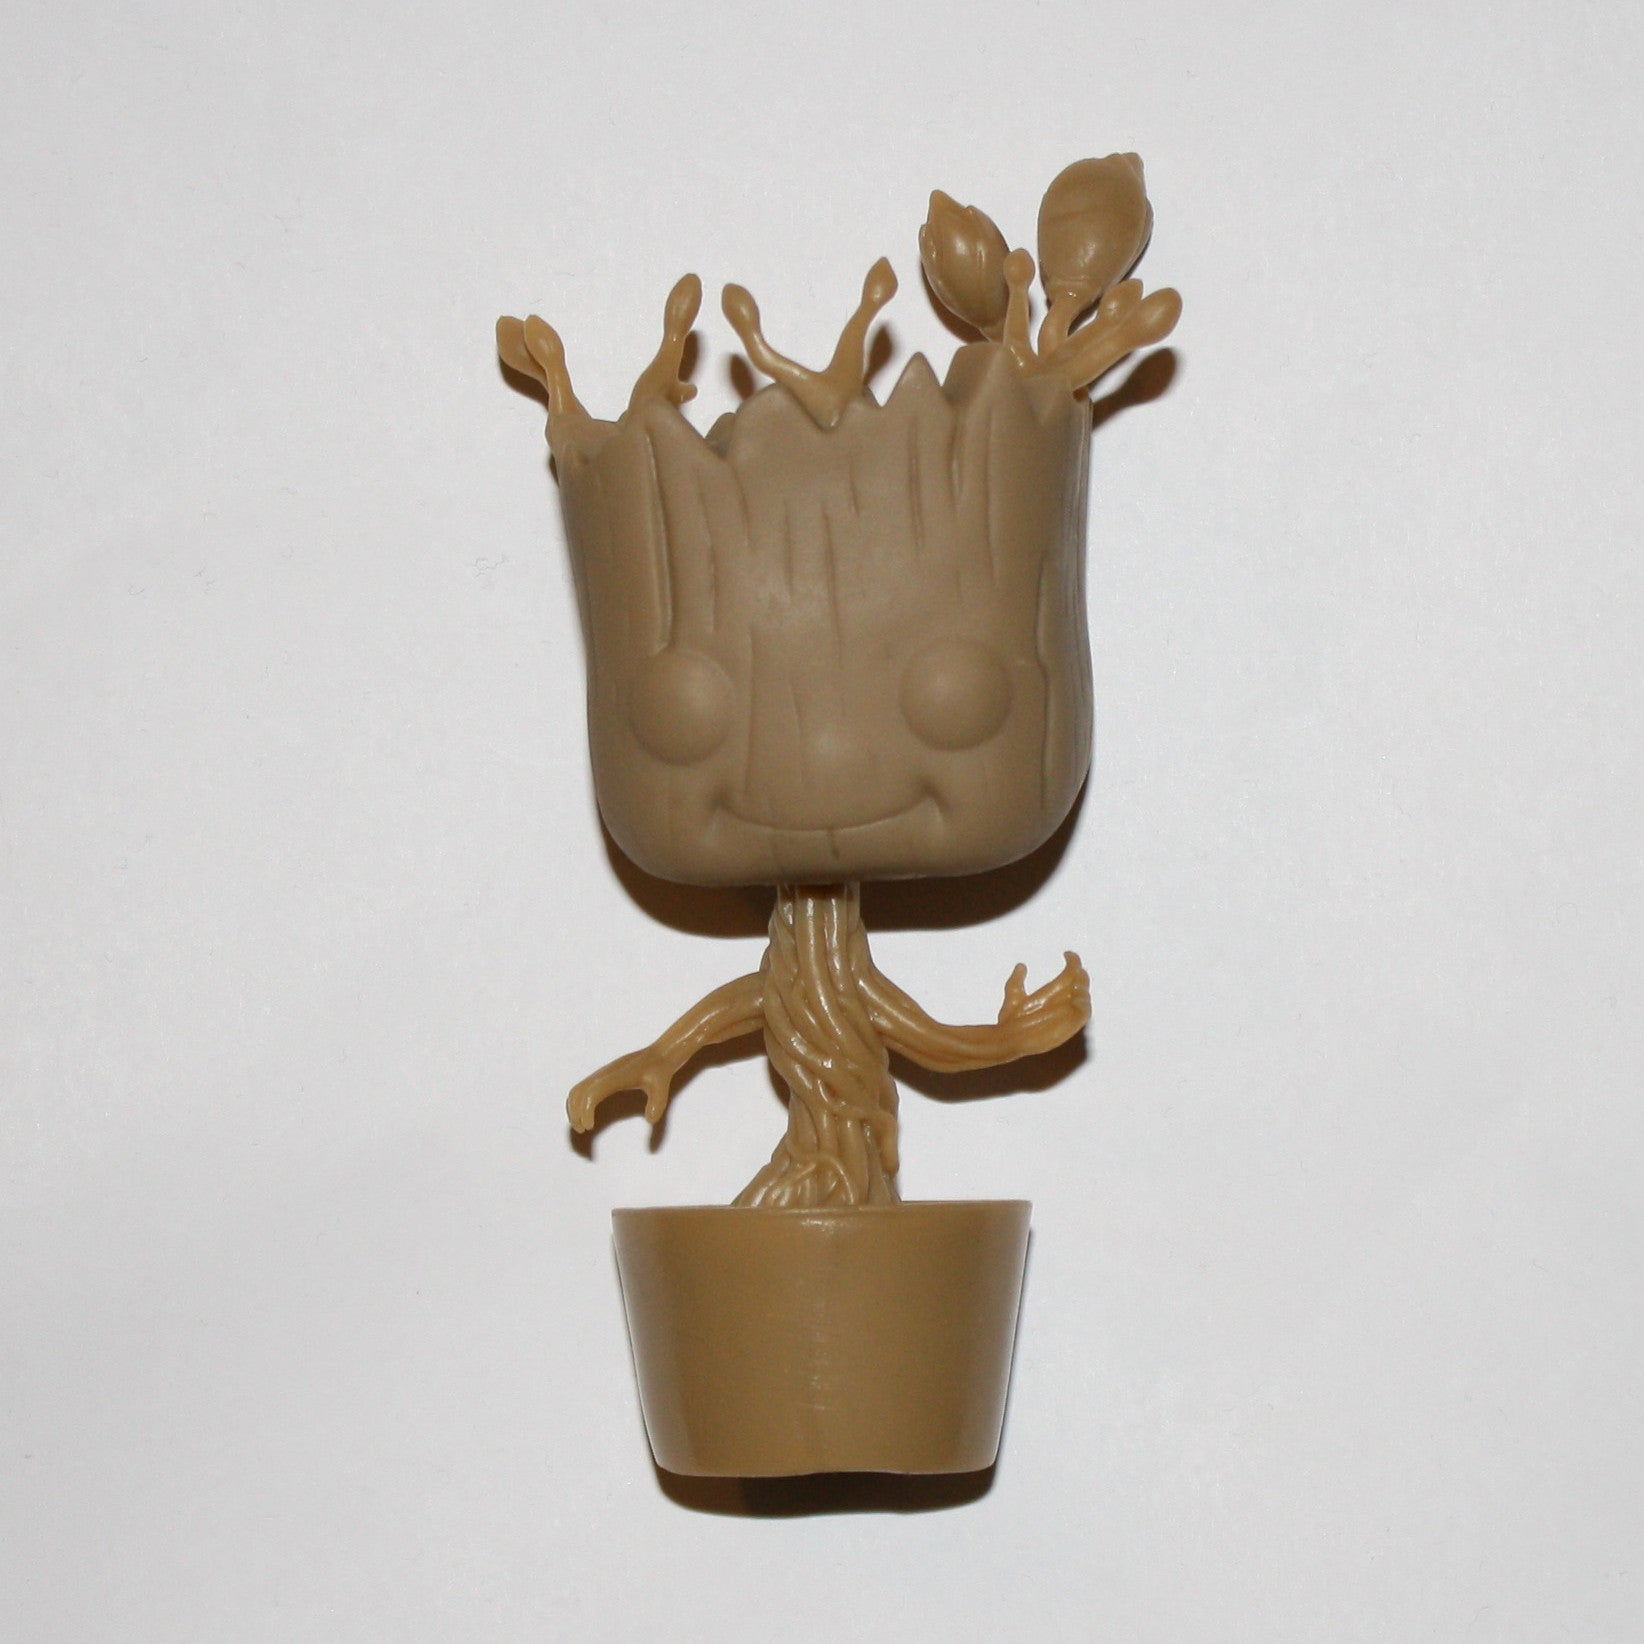 Dancing Groot [Guardians of the Galaxy] Proto